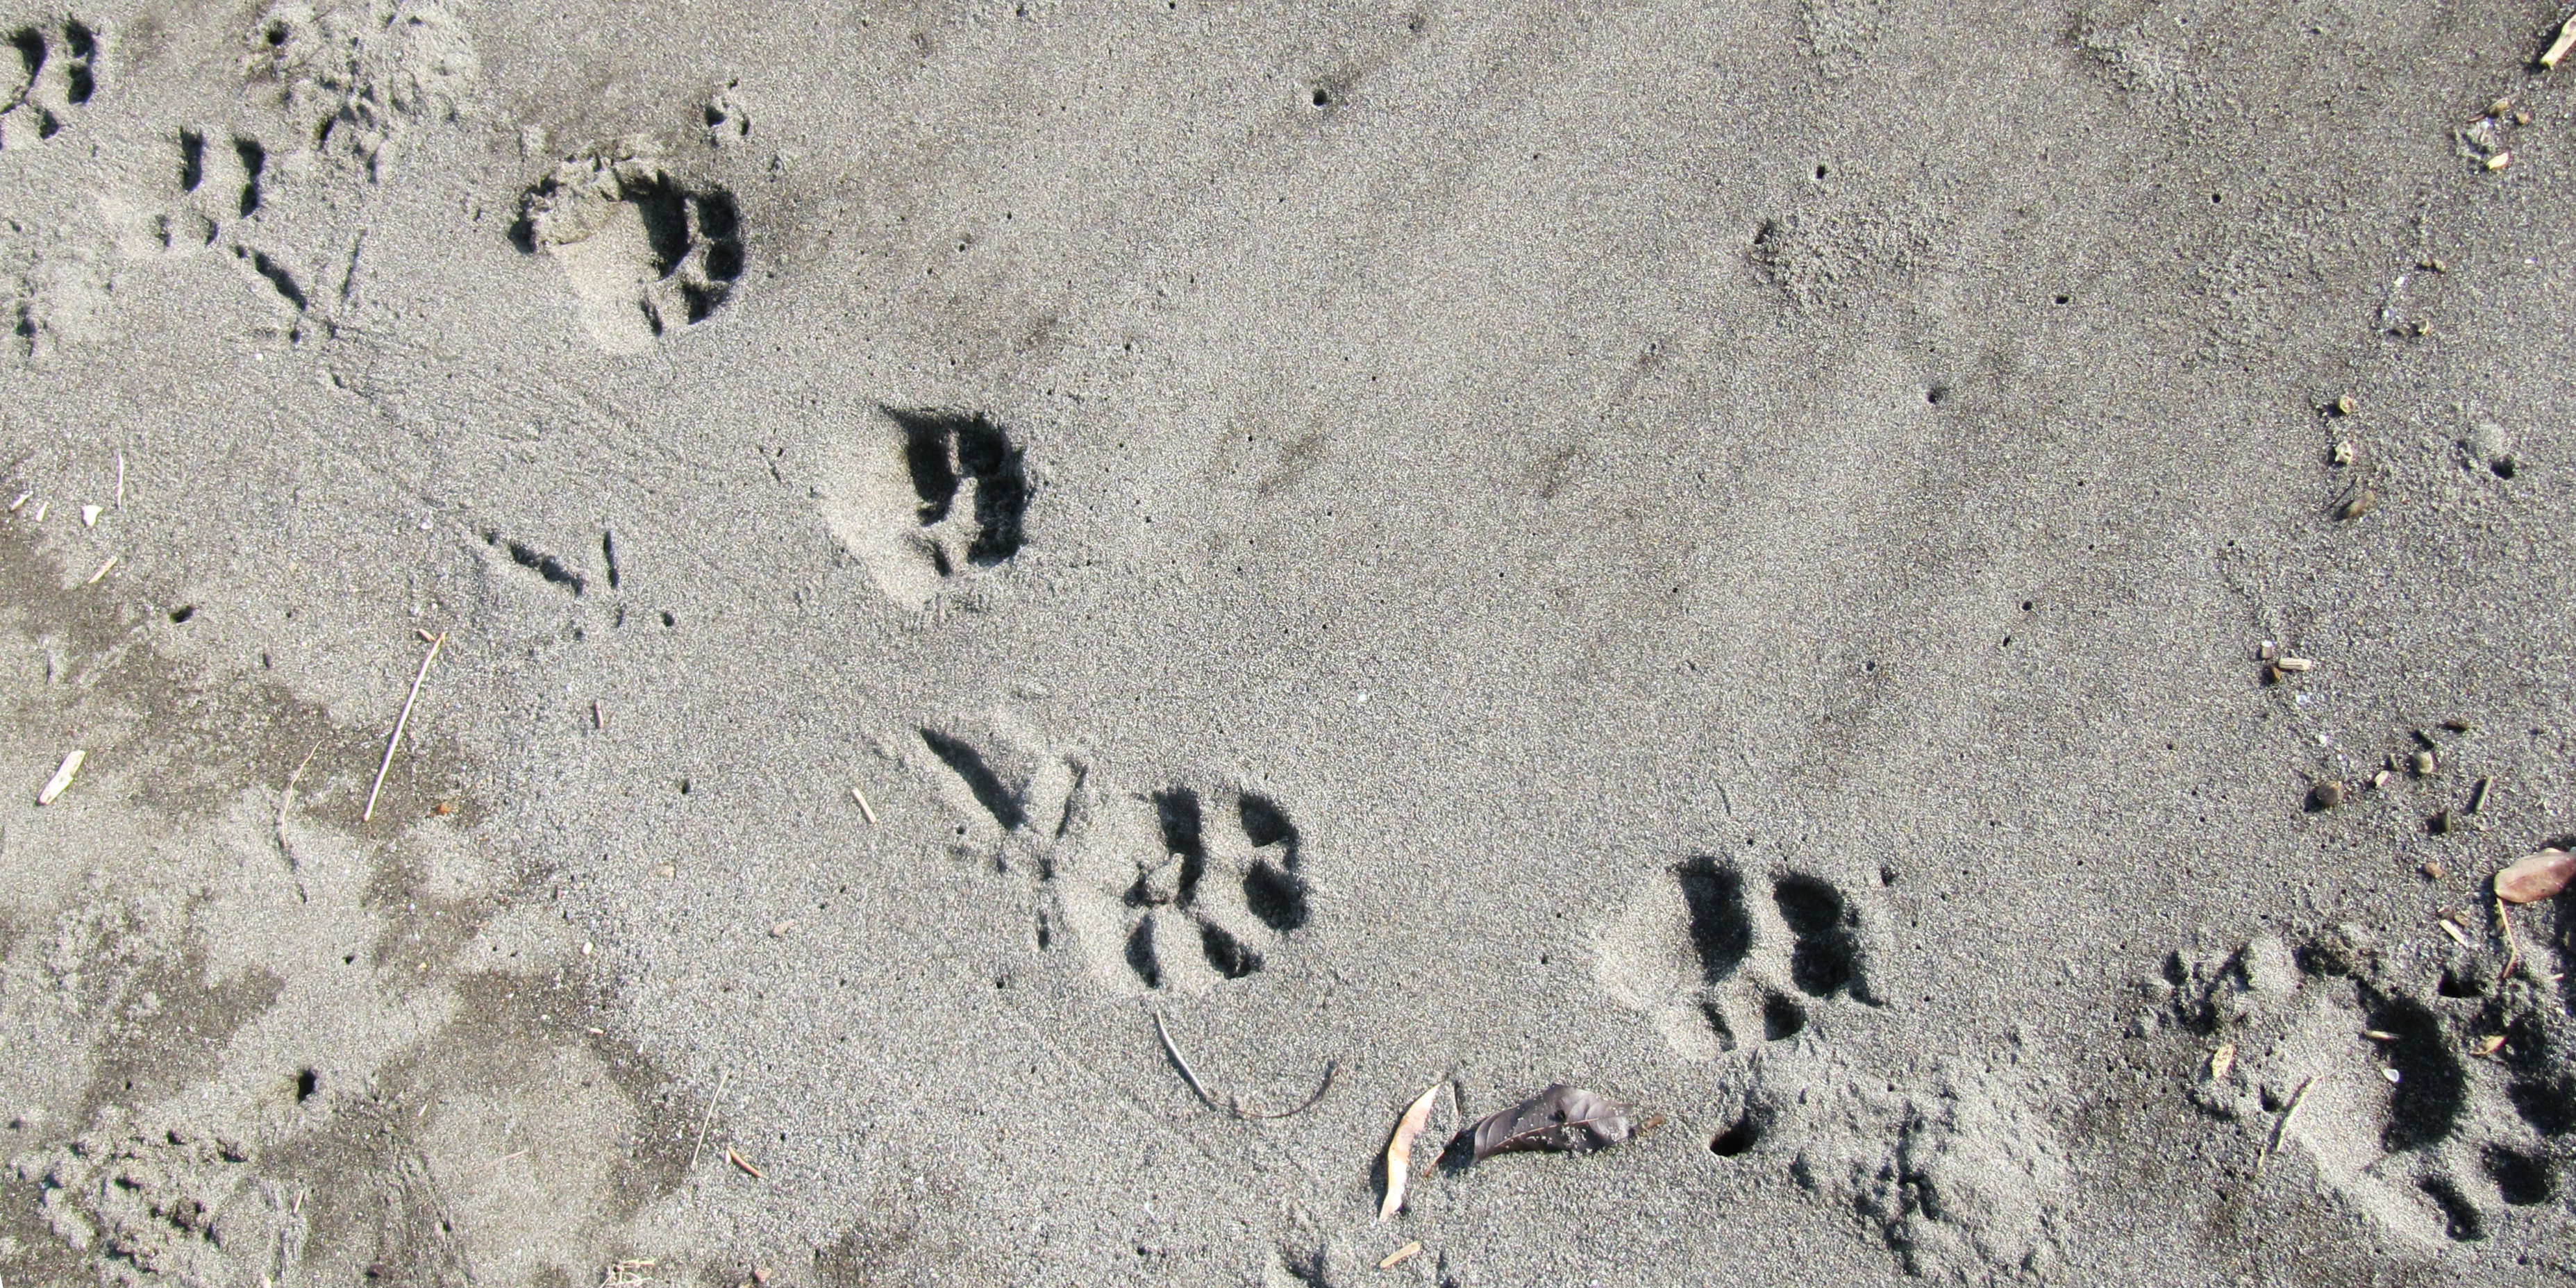 While volunteering in Costa Rica, volunteers find jaguar tracks on the beach.